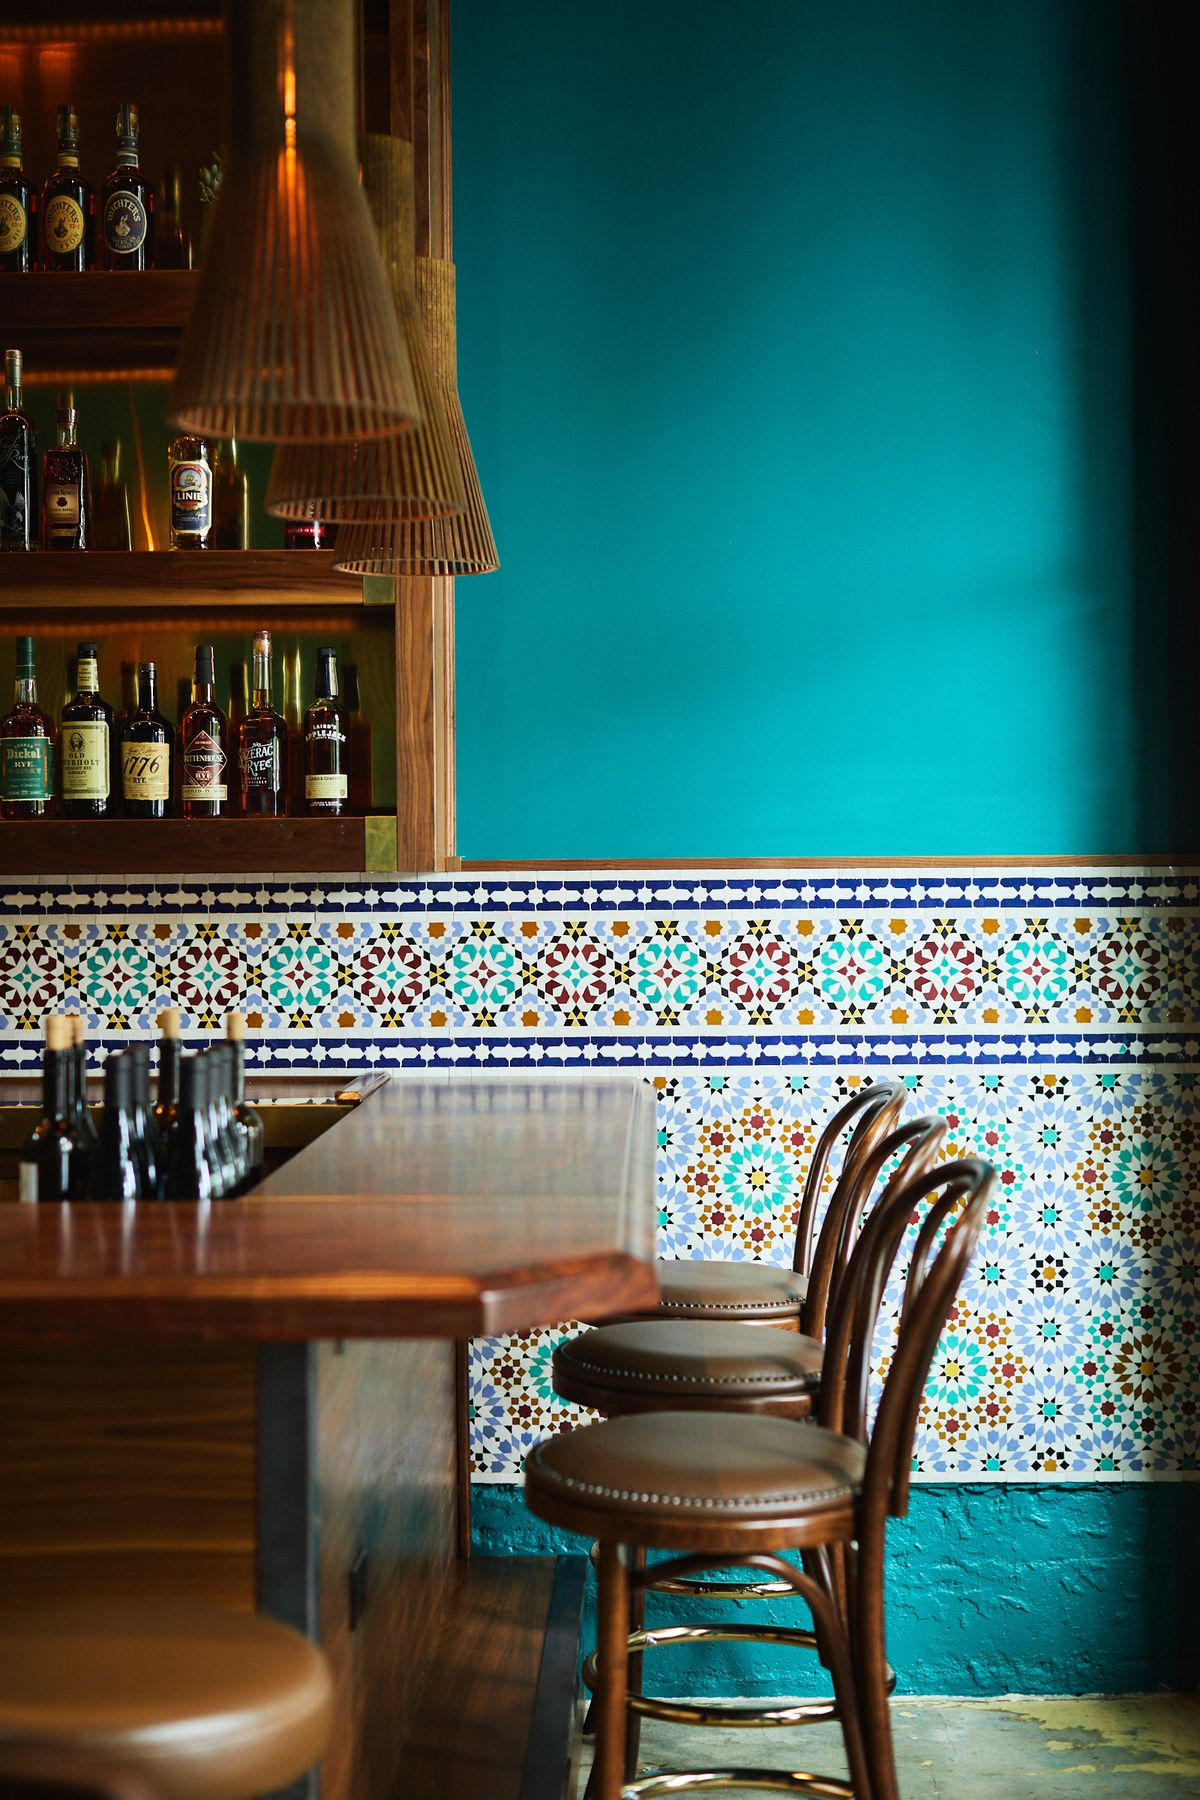 A view of the bar, with wooden chairs and a blue wall trimmed with an ornate design.